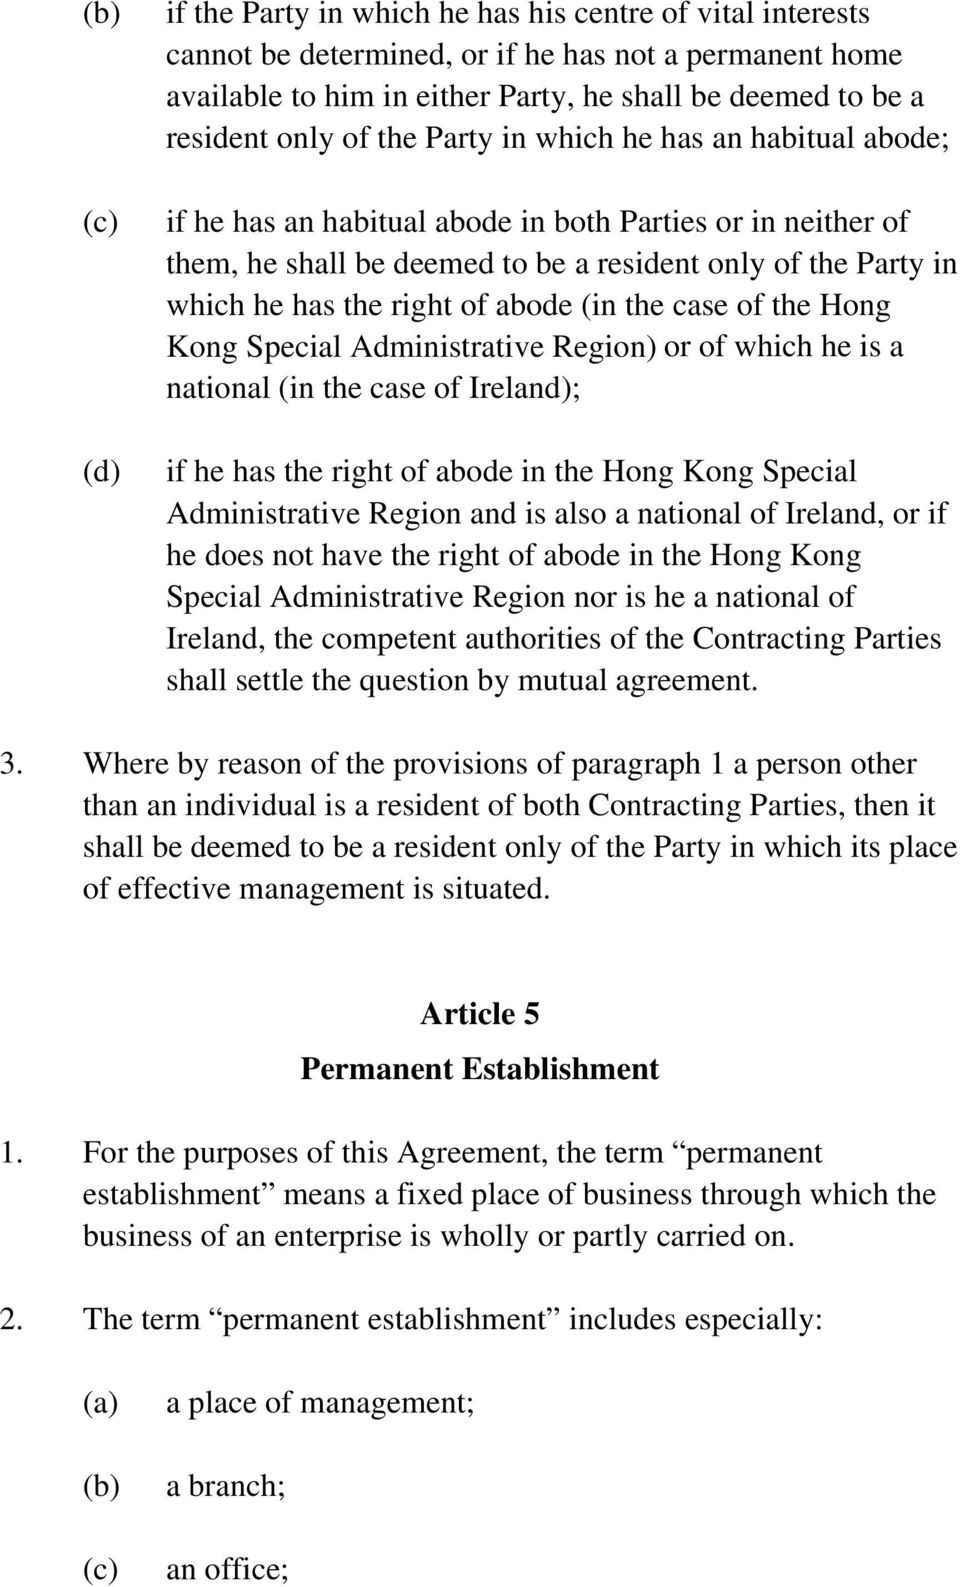 of abode (in the case of the Hong Kong Special Administrative Region) or of which he is a national (in the case of Ireland); if he has the right of abode in the Hong Kong Special Administrative